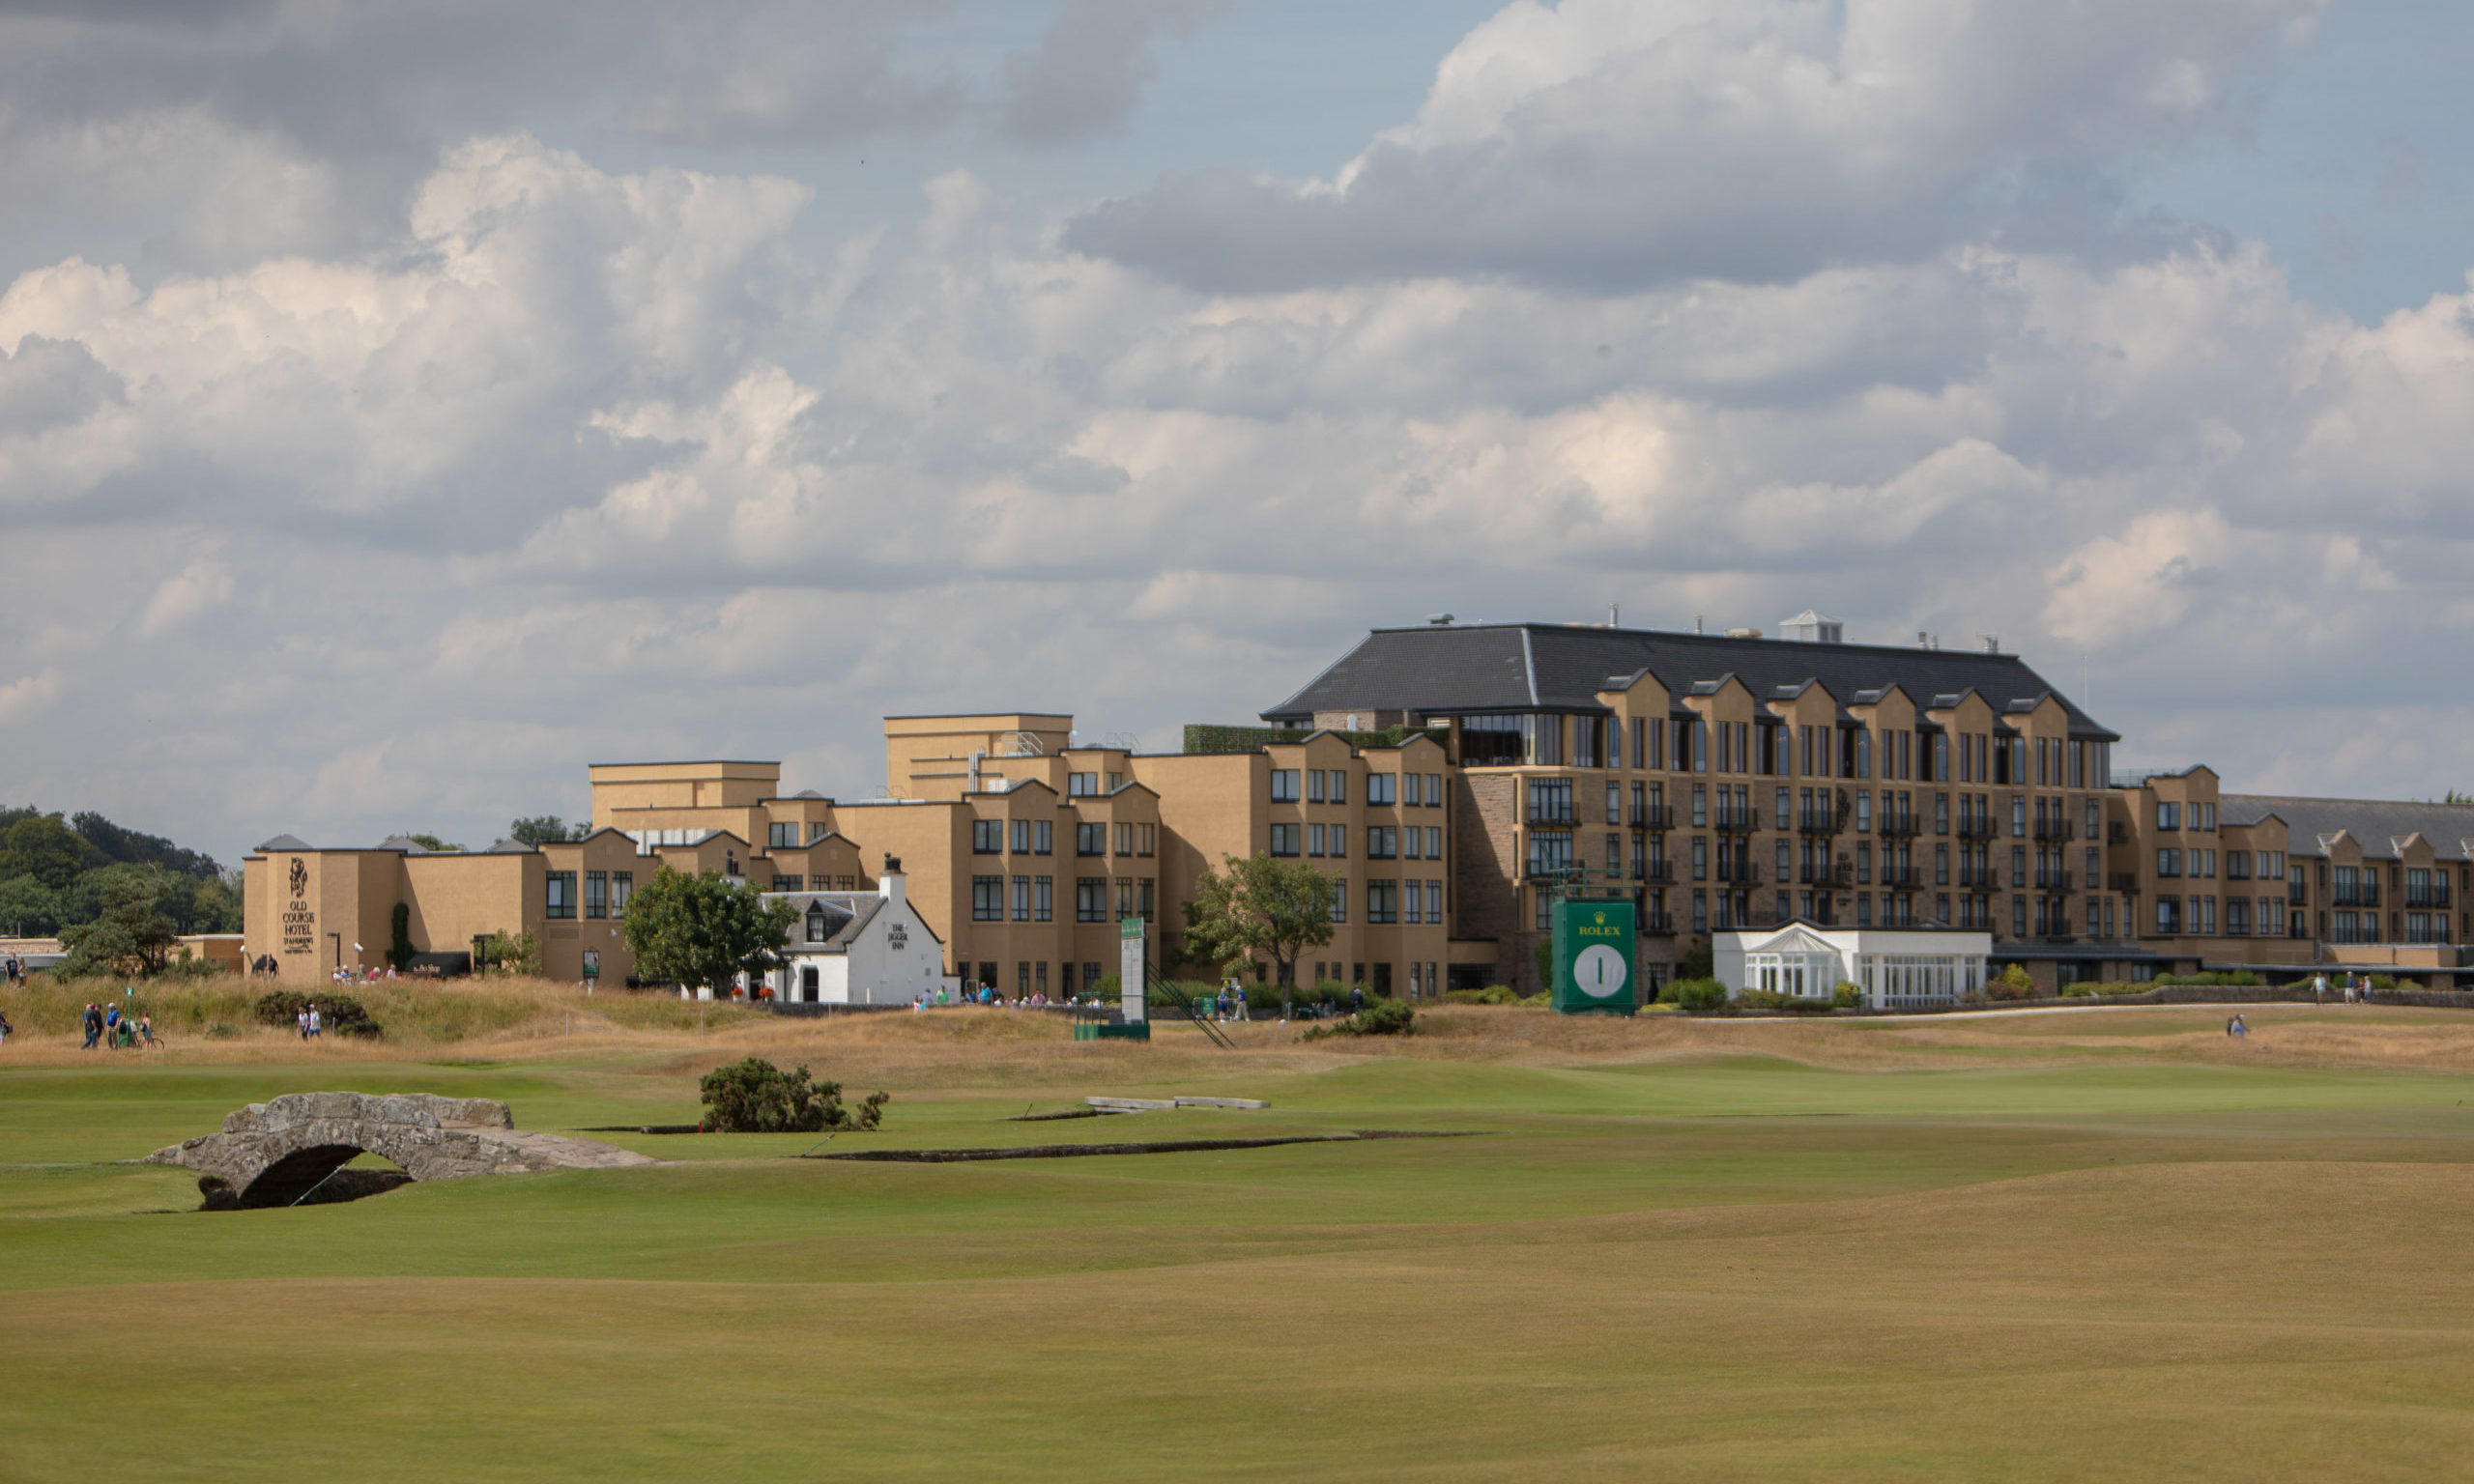 The Old Course Hotel overlooks the famous Old Coure.